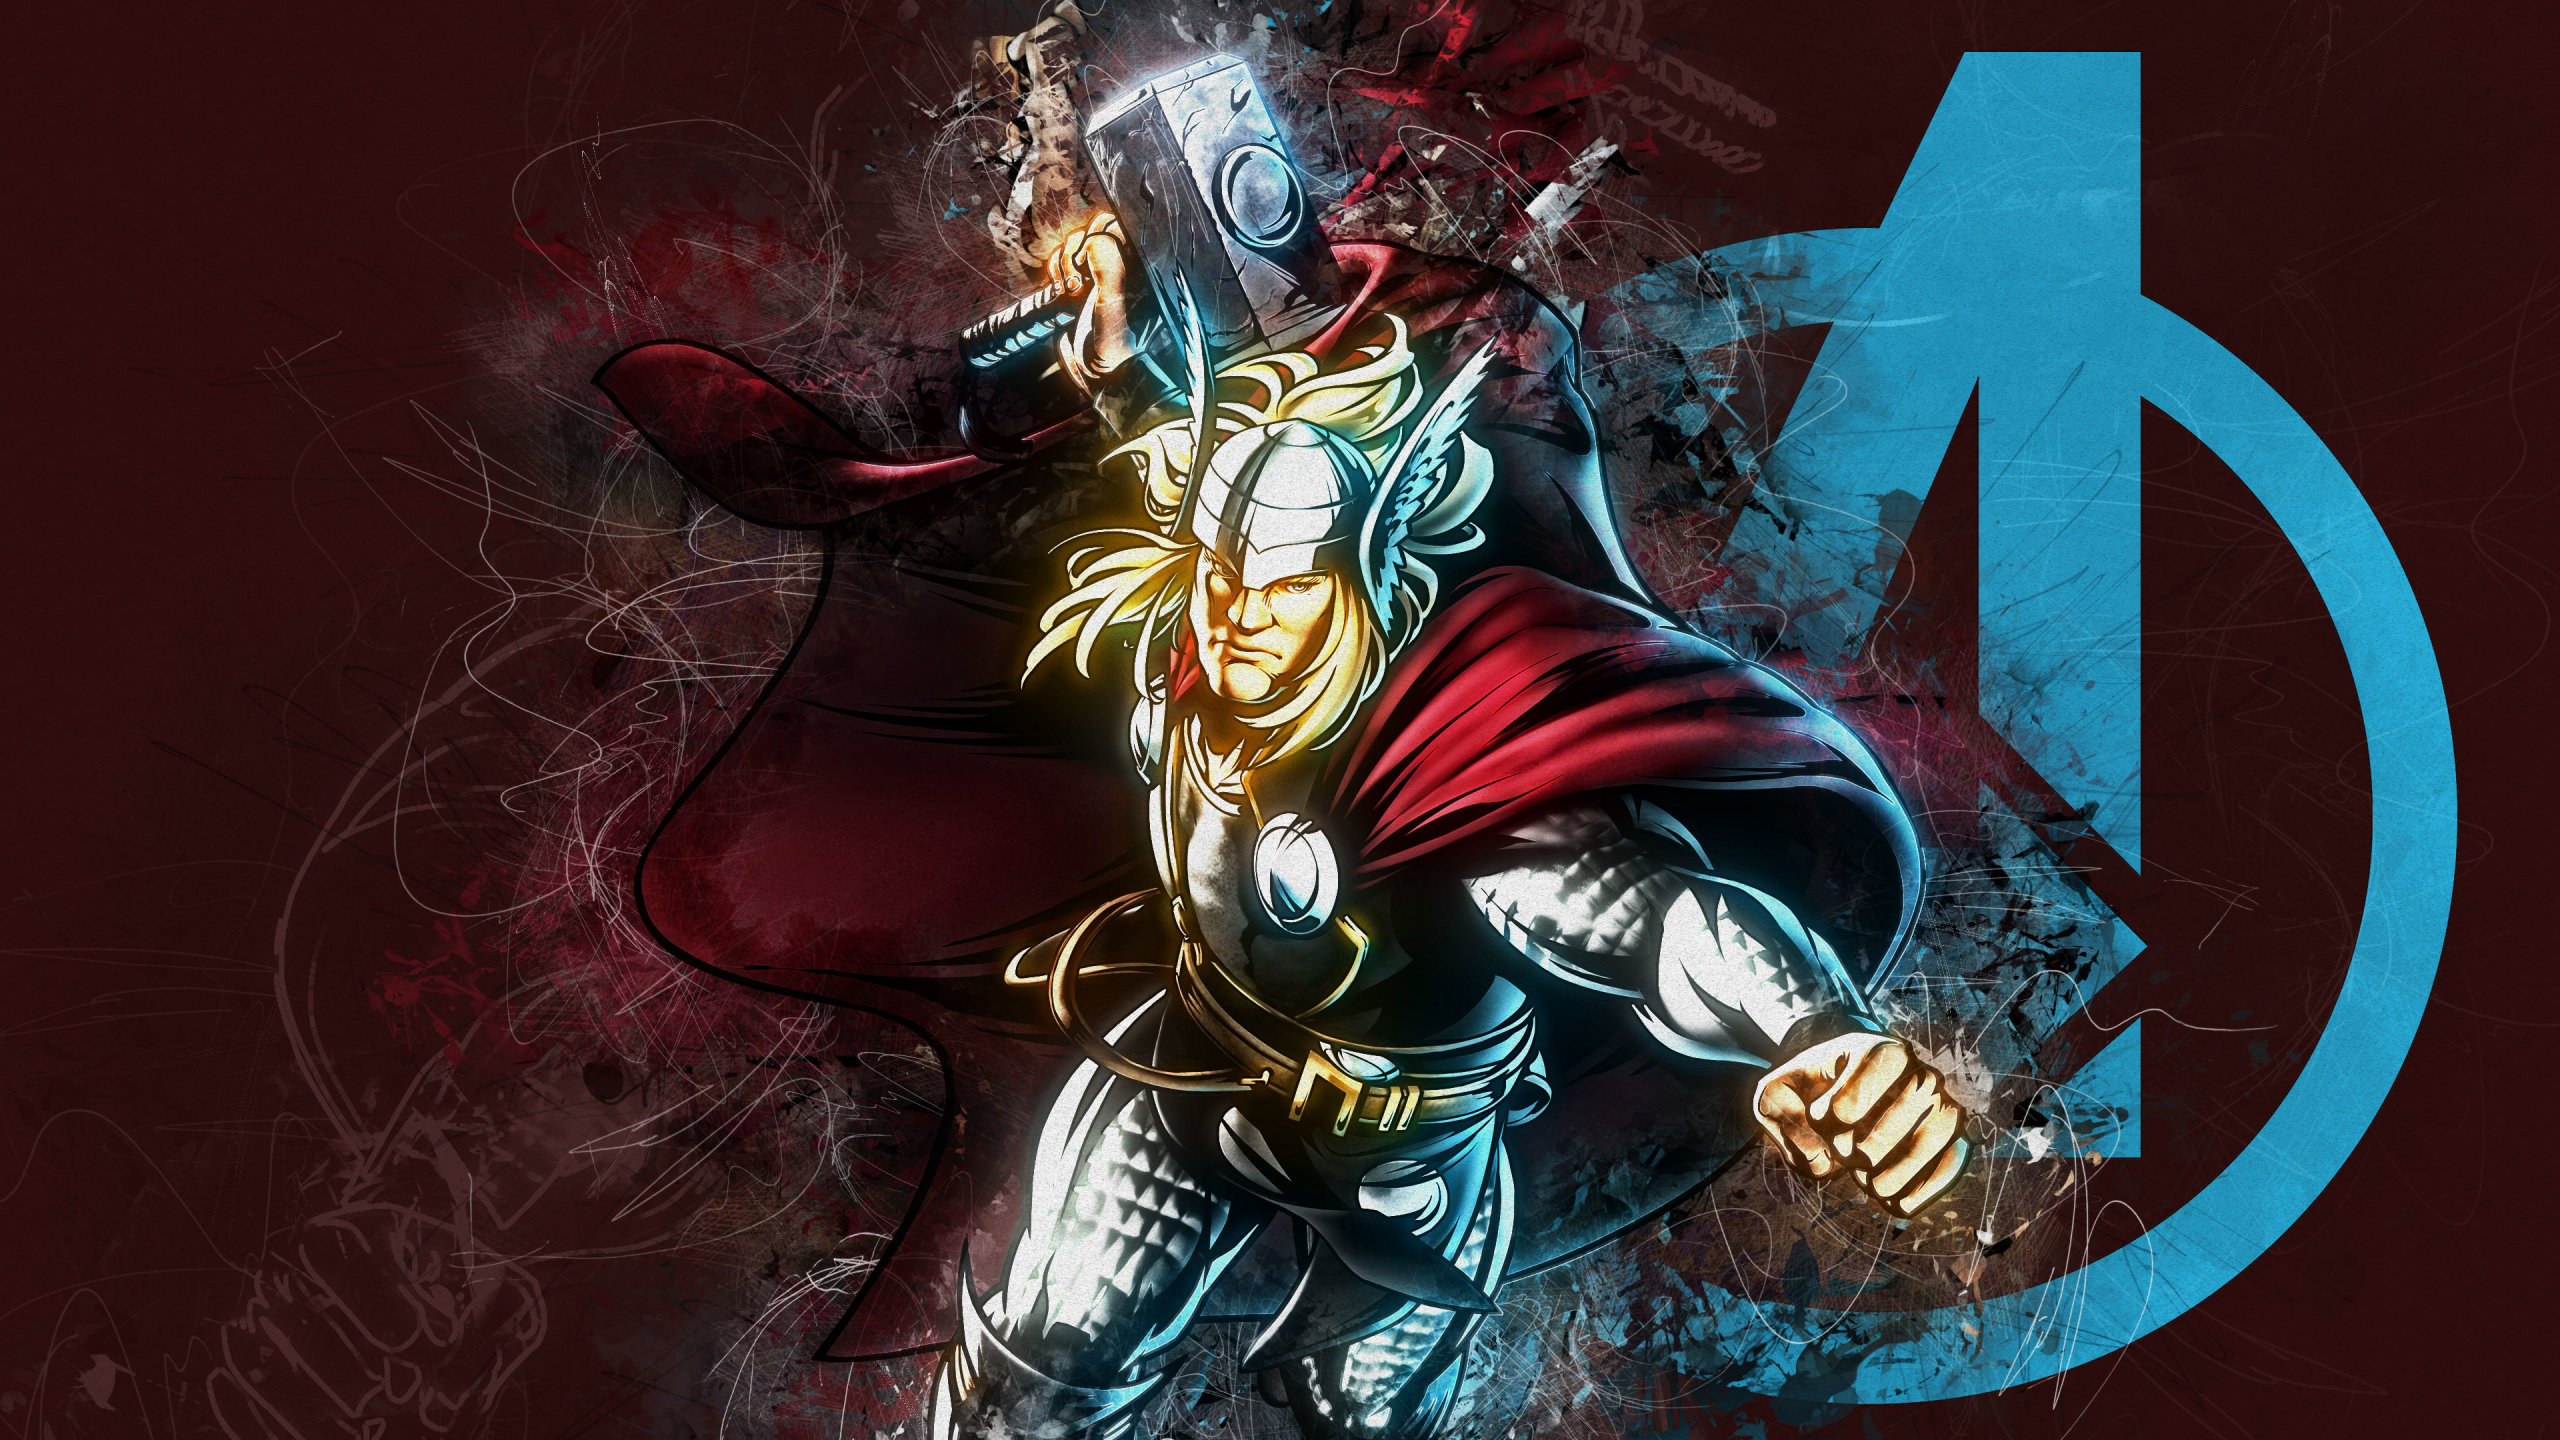 Download 2560x1440 Wallpaper Thor God Of Thunder Marvel Comics Dual Wide Widescreen 16 9 Widescreen 2560x1440 Hd Image Background 7551